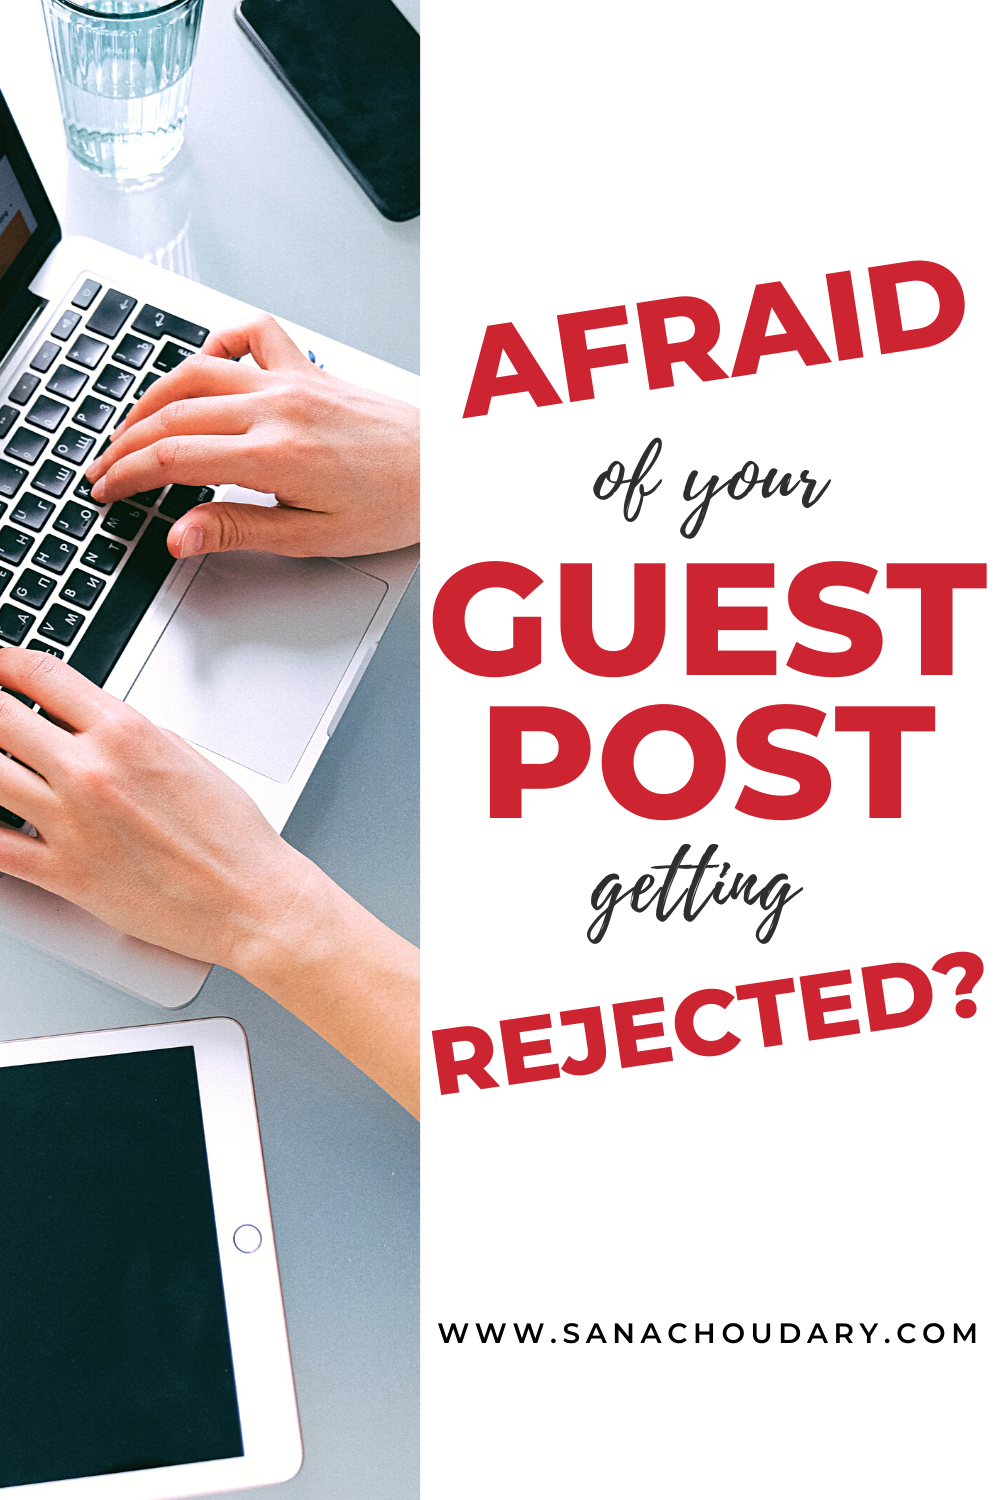 Afraid of your guest post getting rejected?